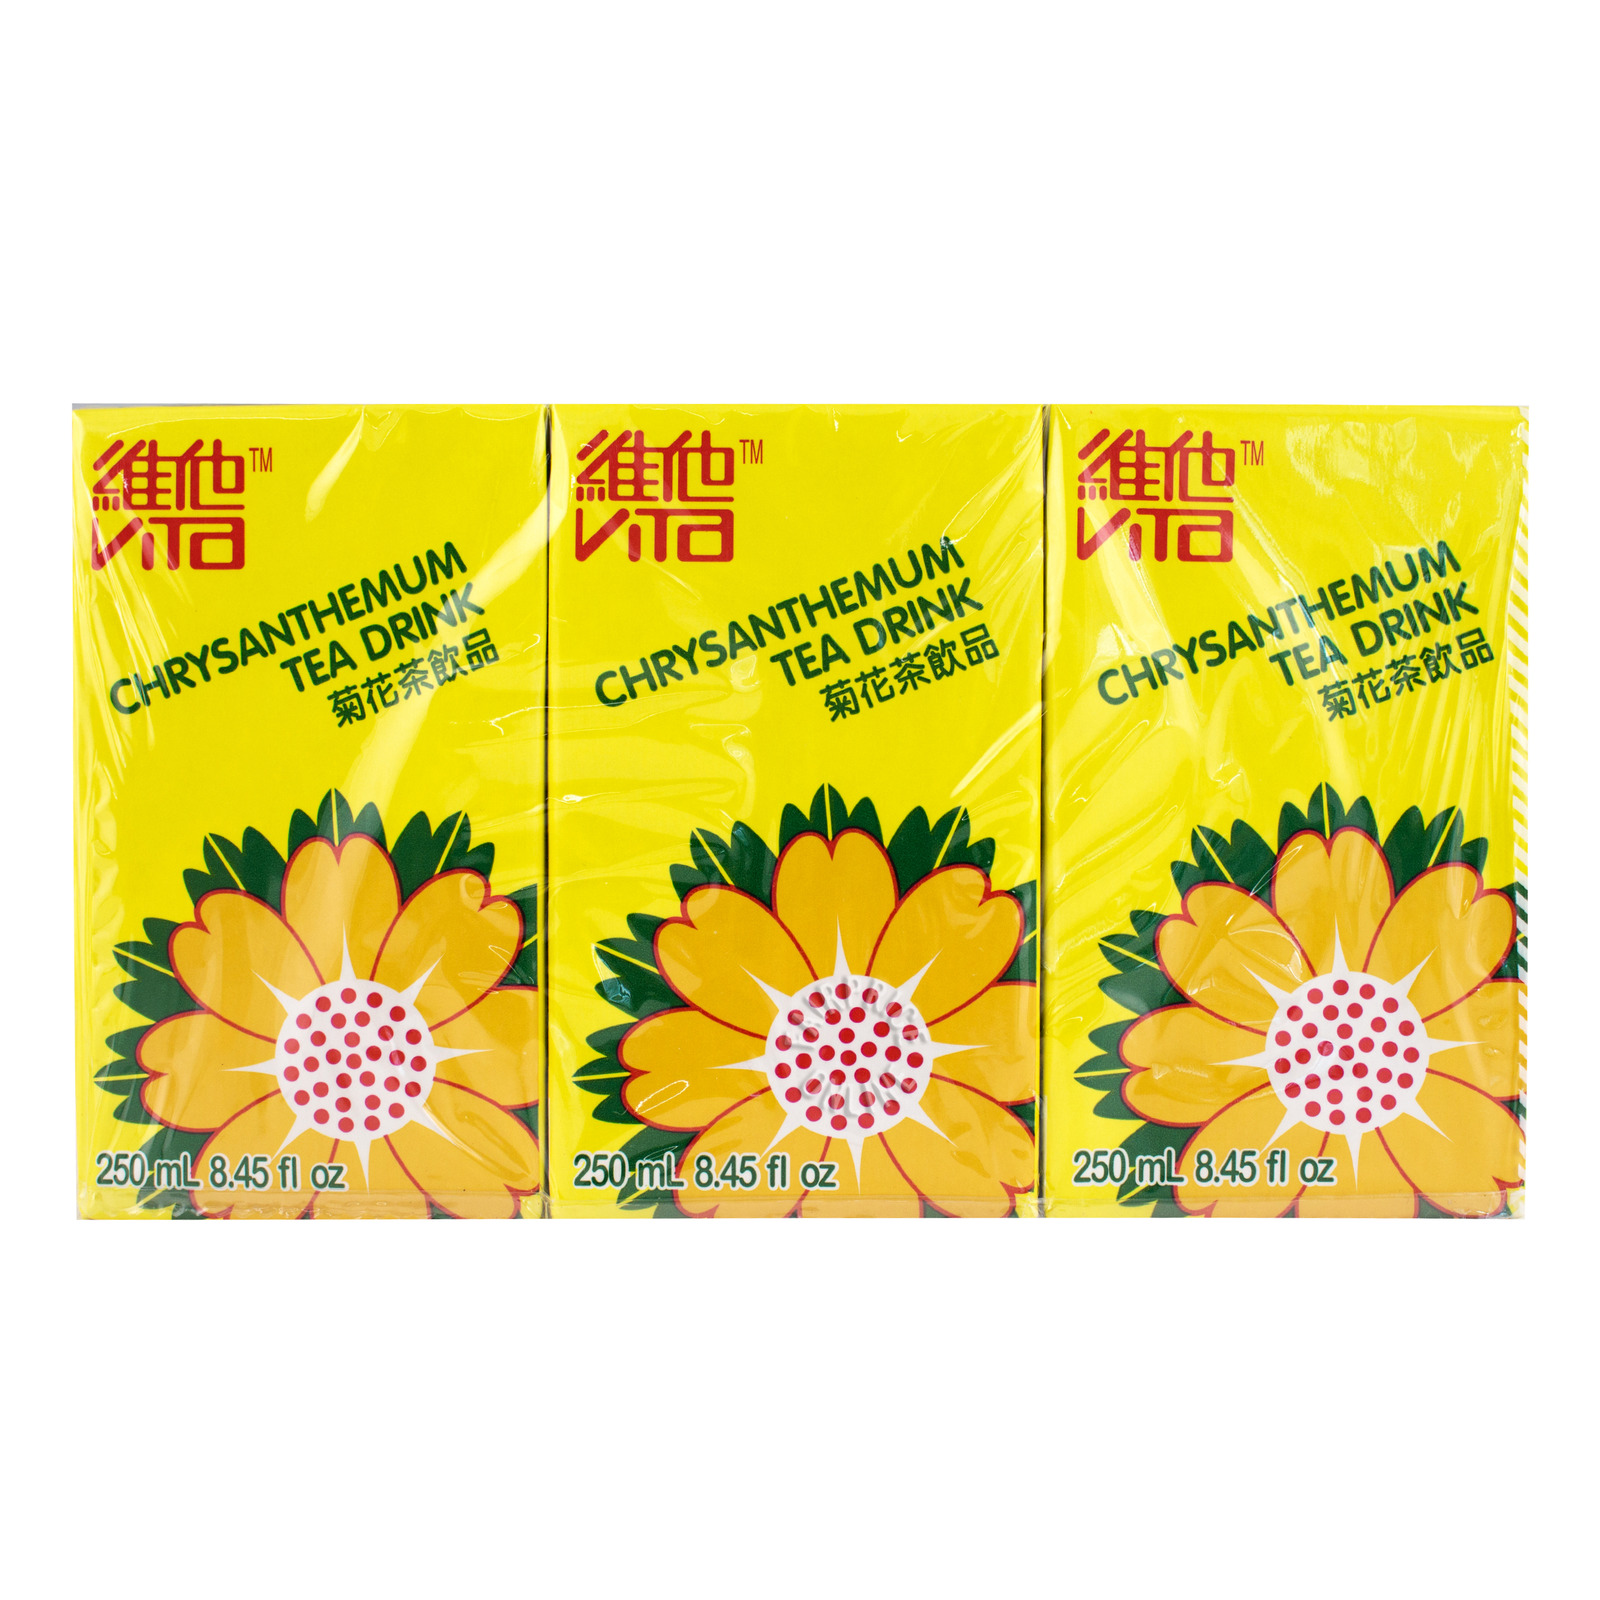 Vita Packet Drink - Chrysanthemum Tea